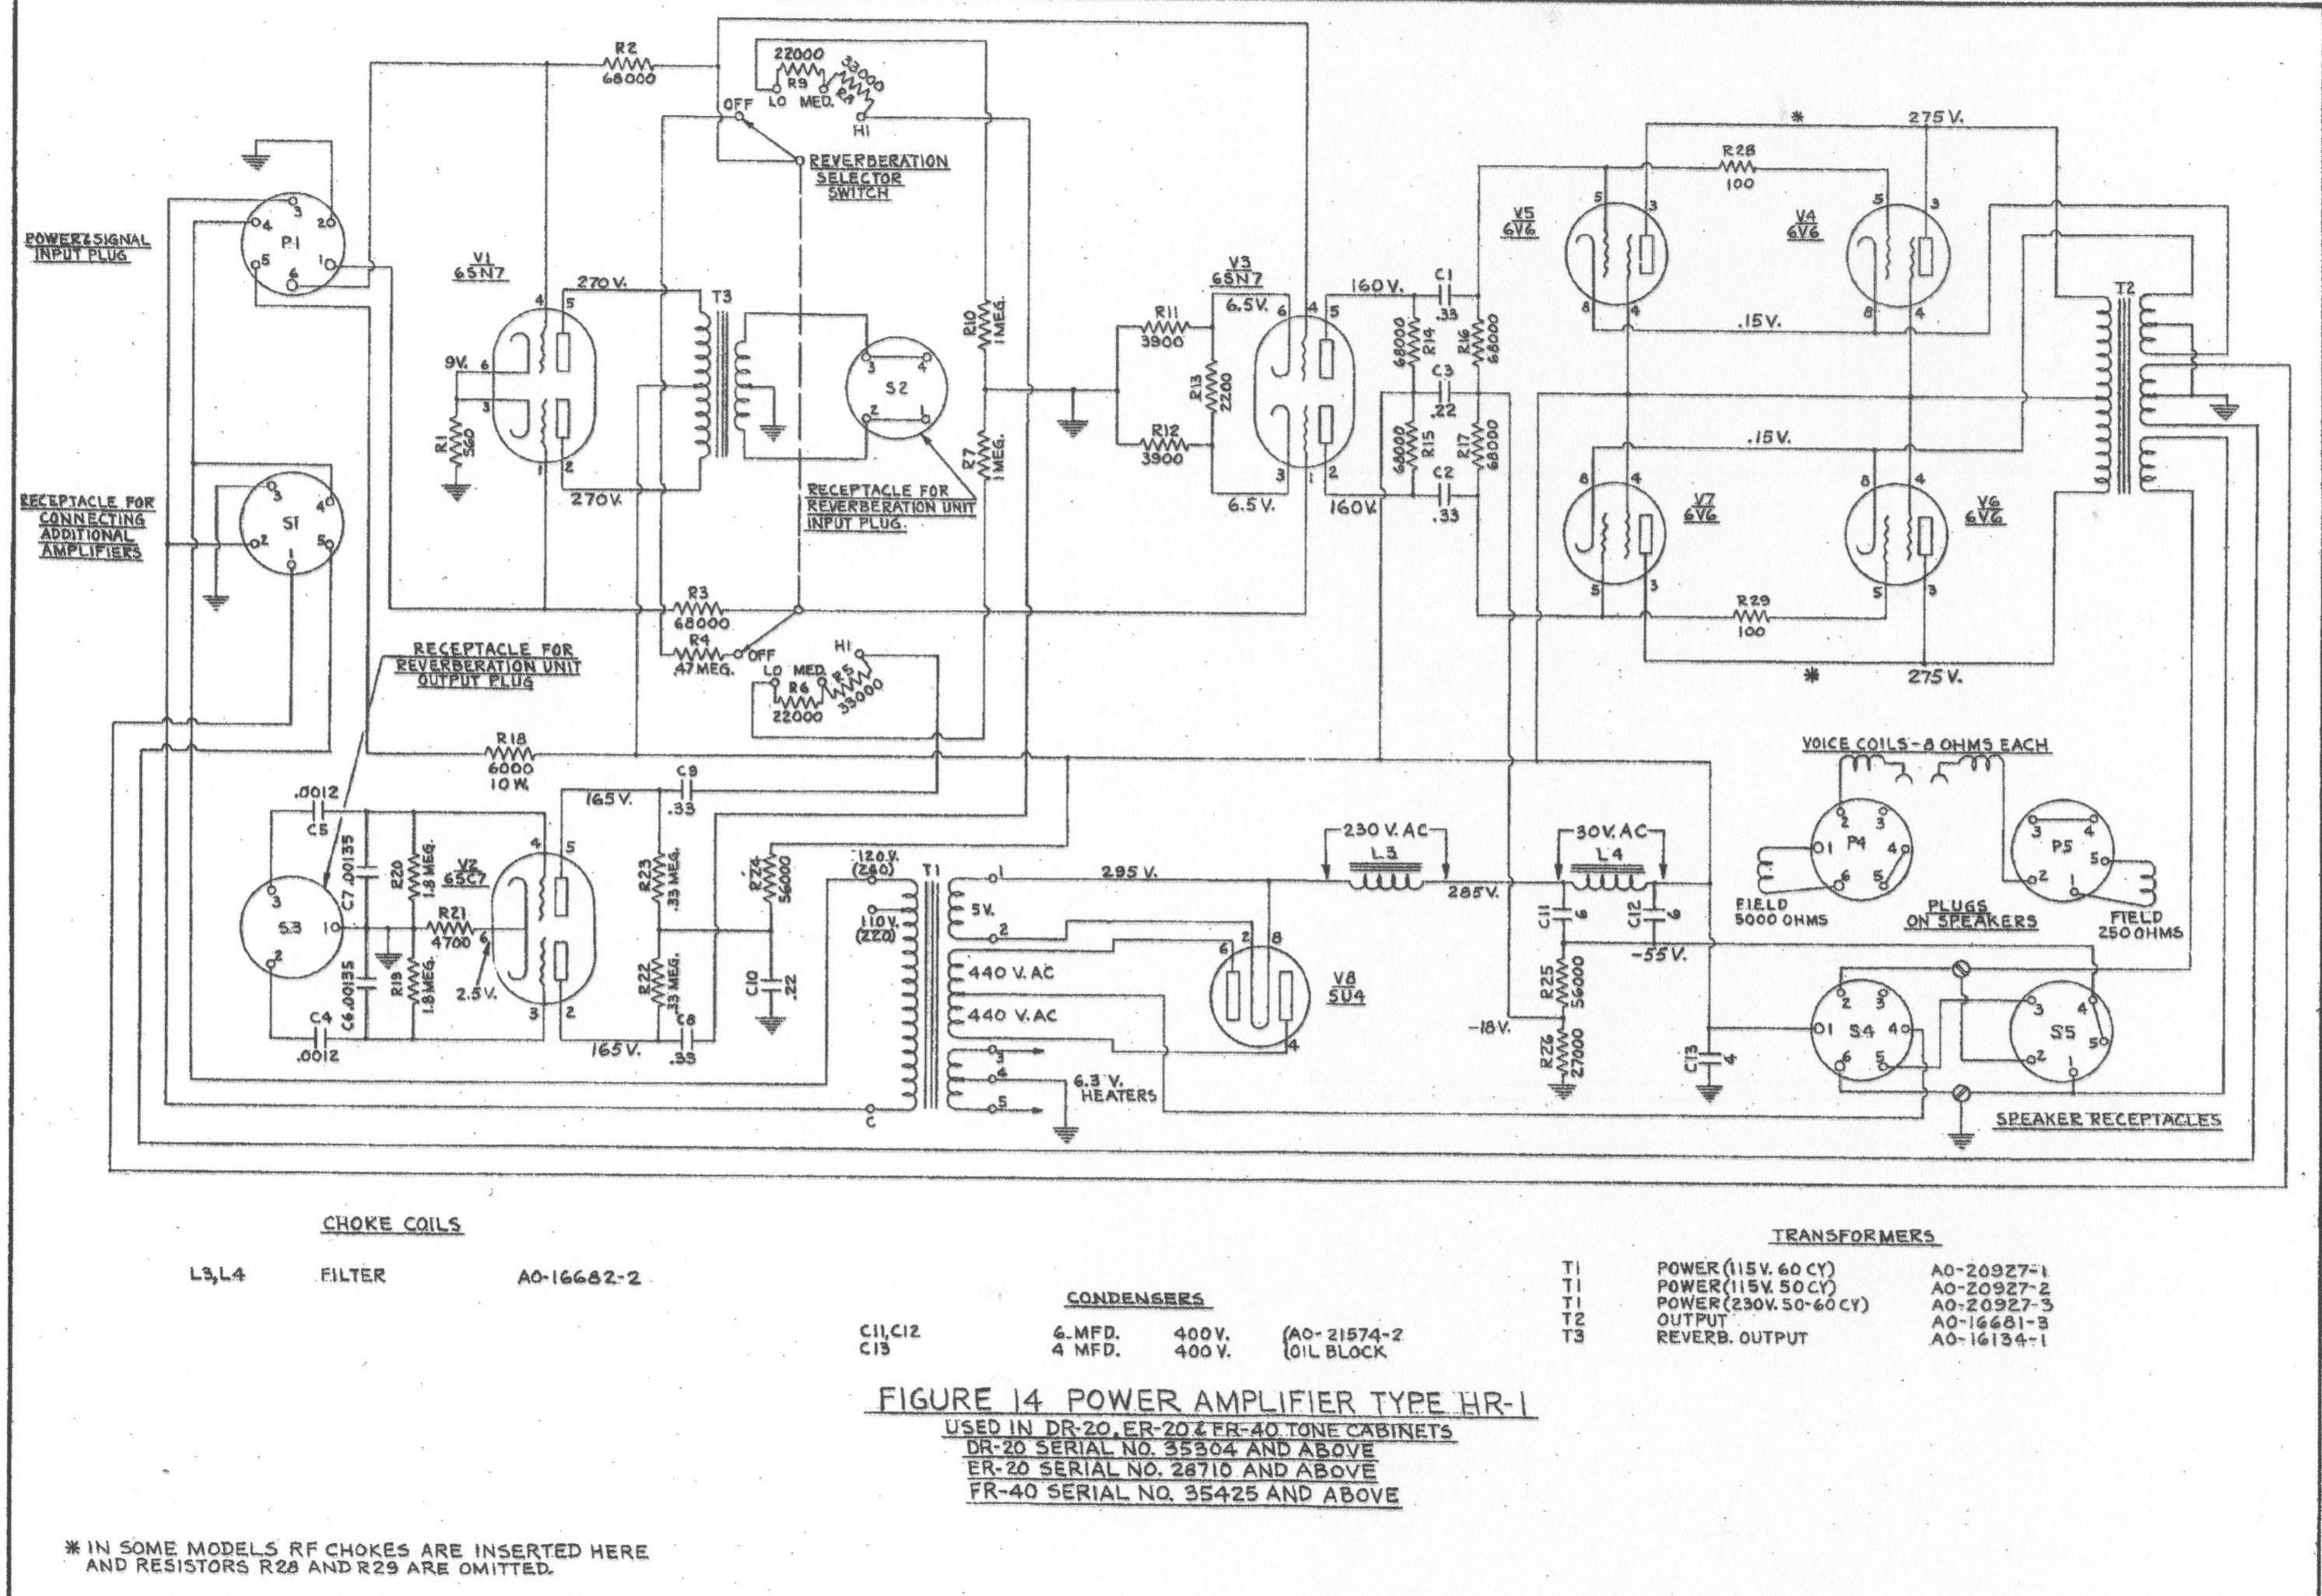 B Cabinet Wiring Diagrams Just Another Diagram Blog Rj45 Connector Pdf Hammond Schematics Here And Elsewhere On The Net Rh Captain Foldback Com Cat5